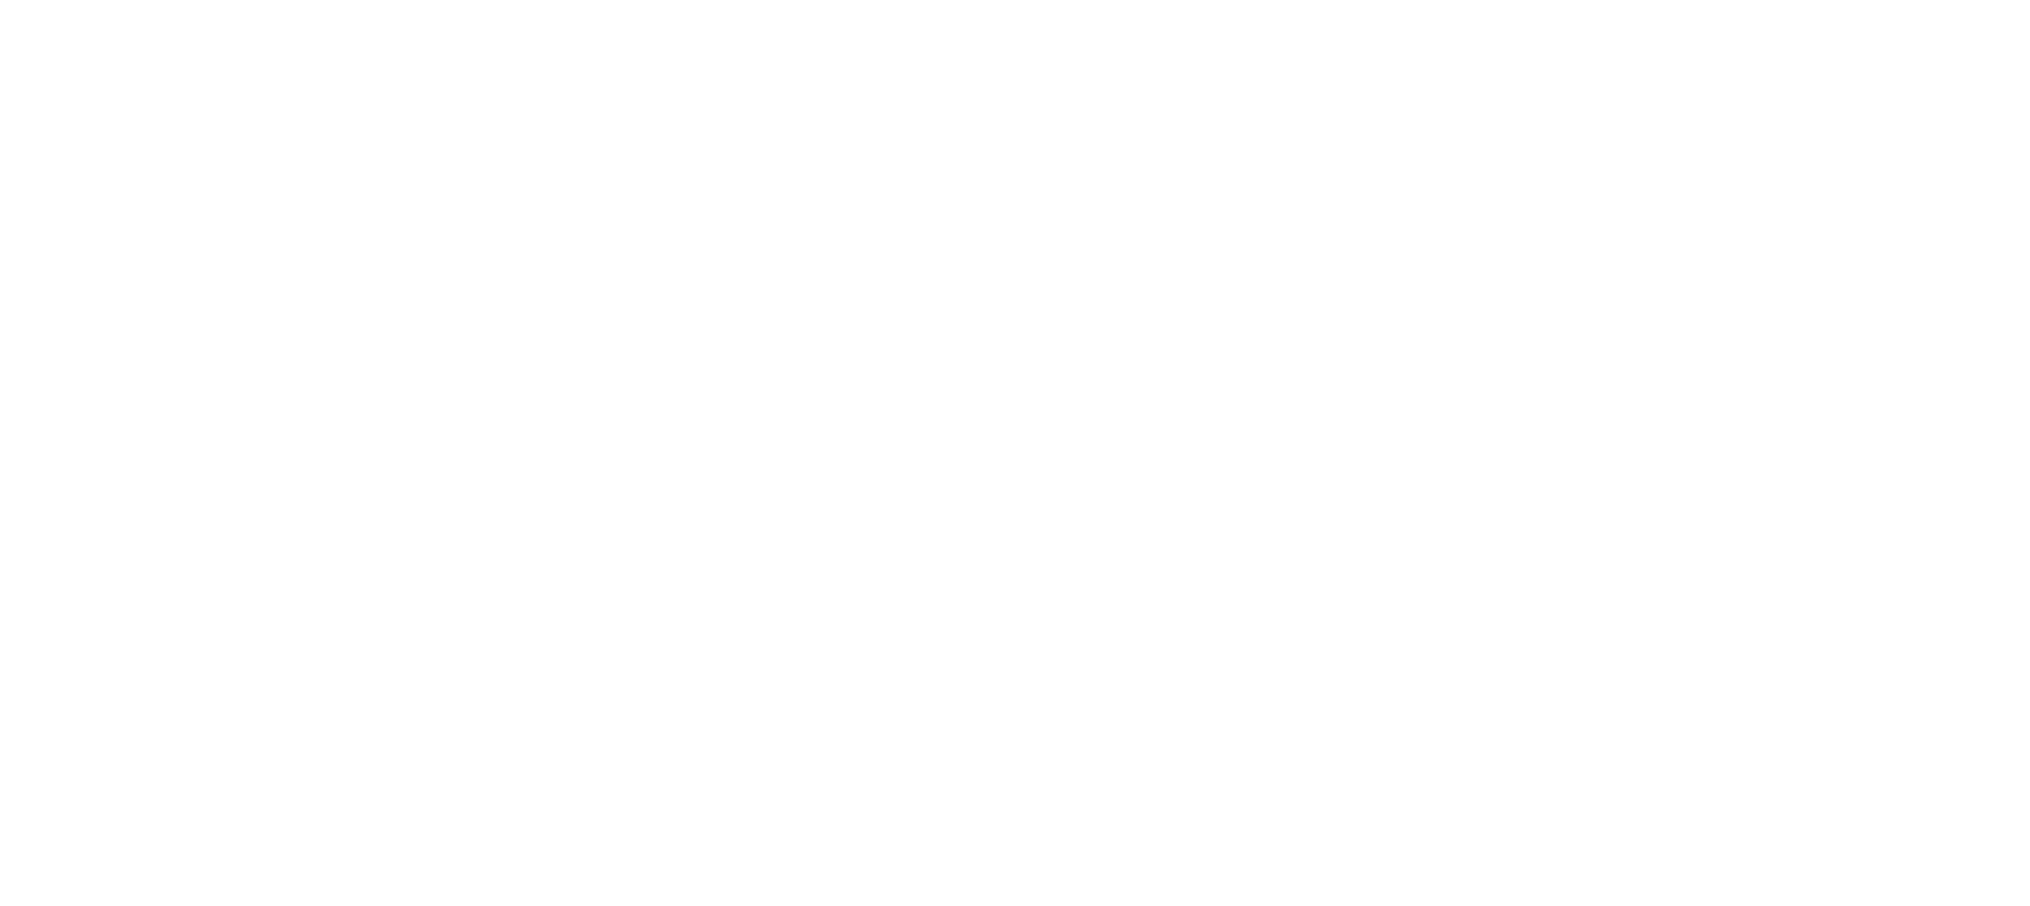 Download Animated Clouds Png.